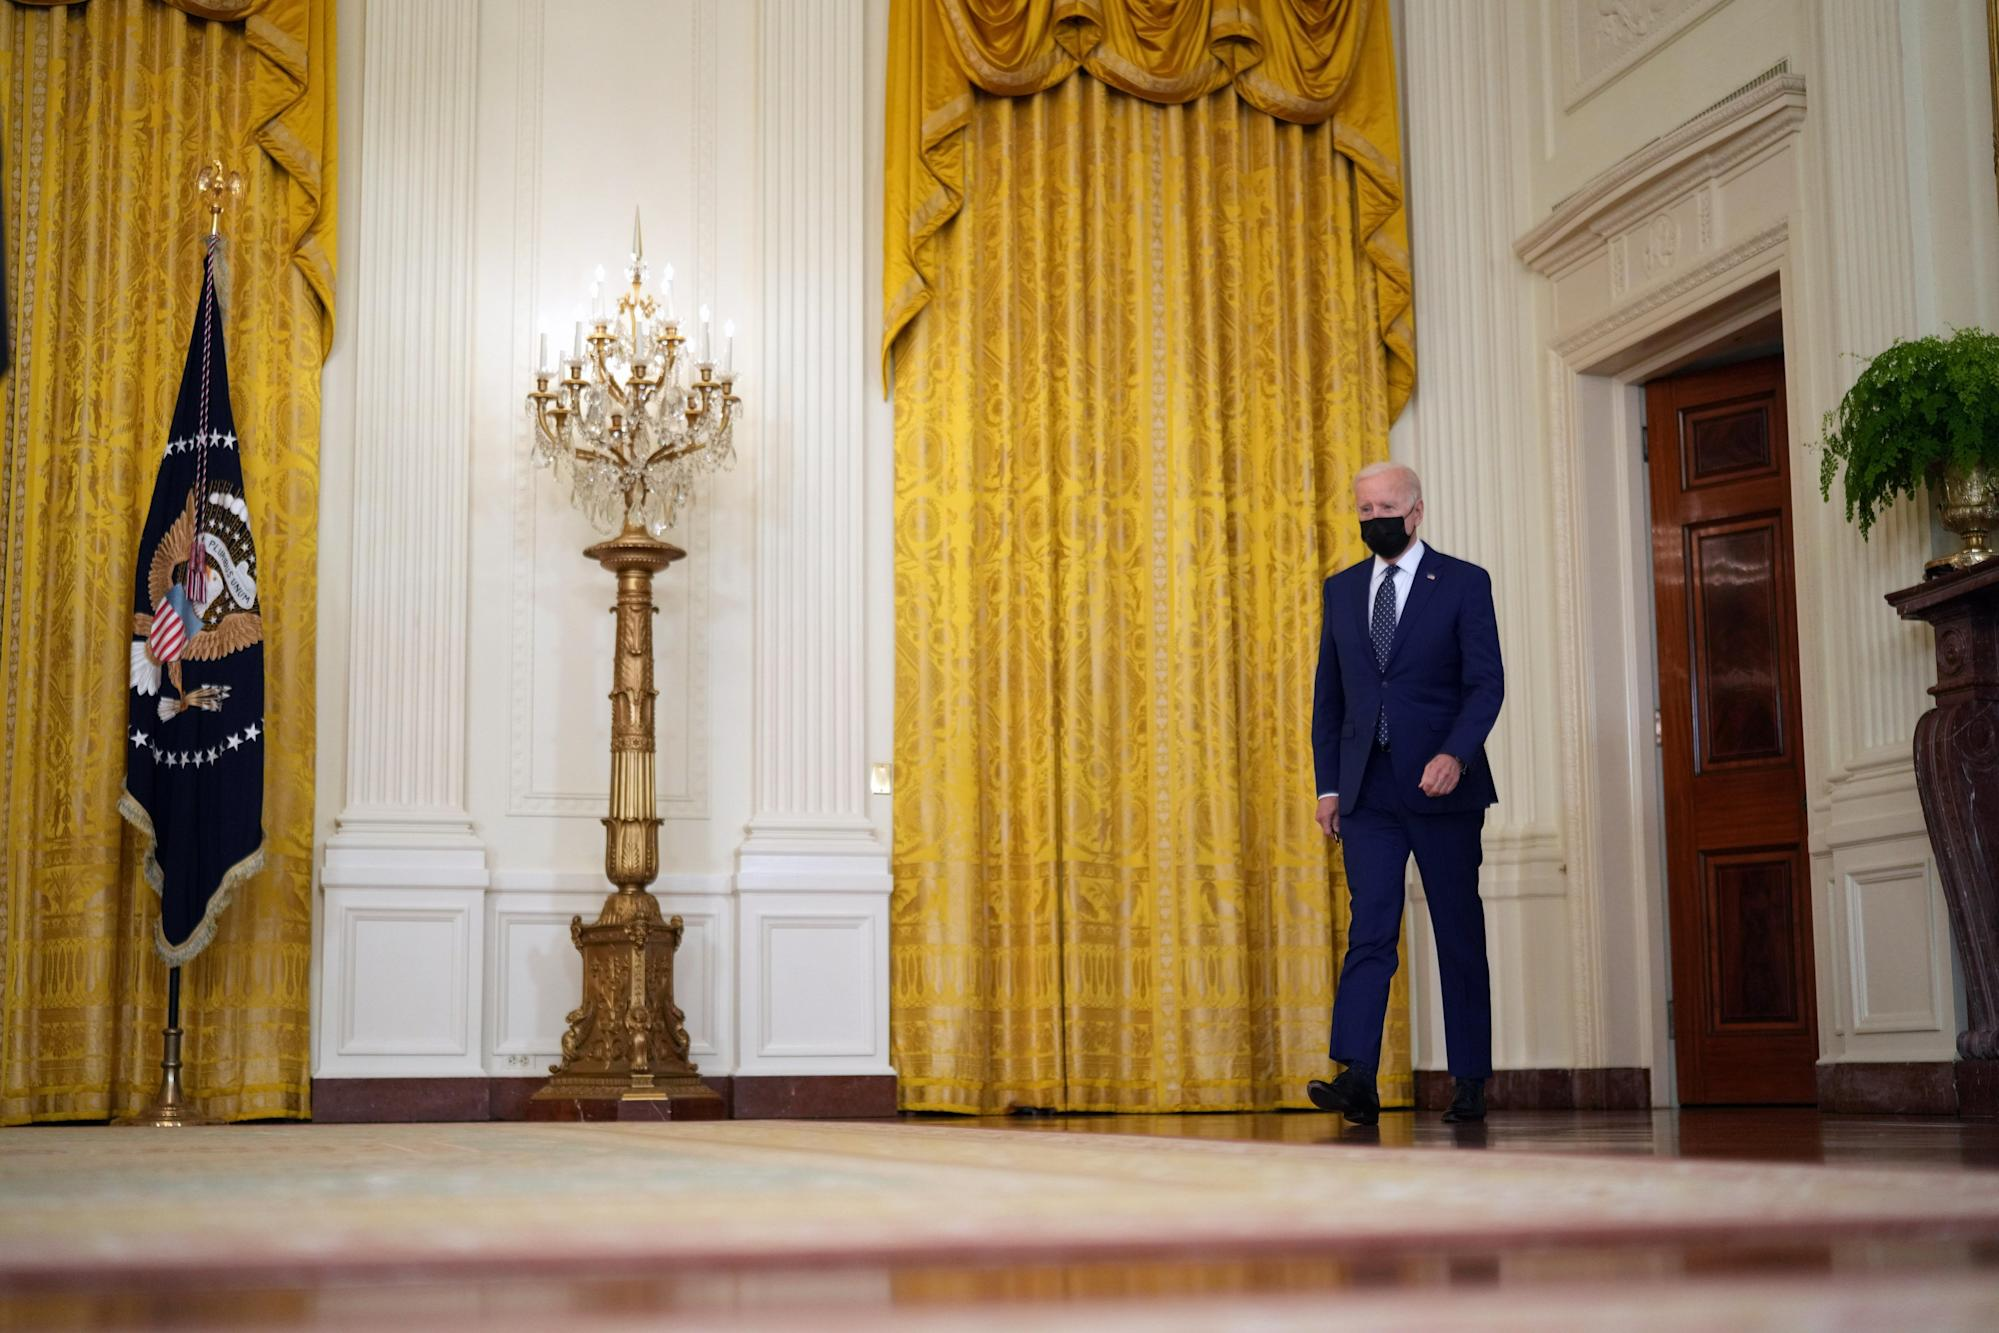 Amid Biden Climate Push, a Question Looms: Is America's Word Good?